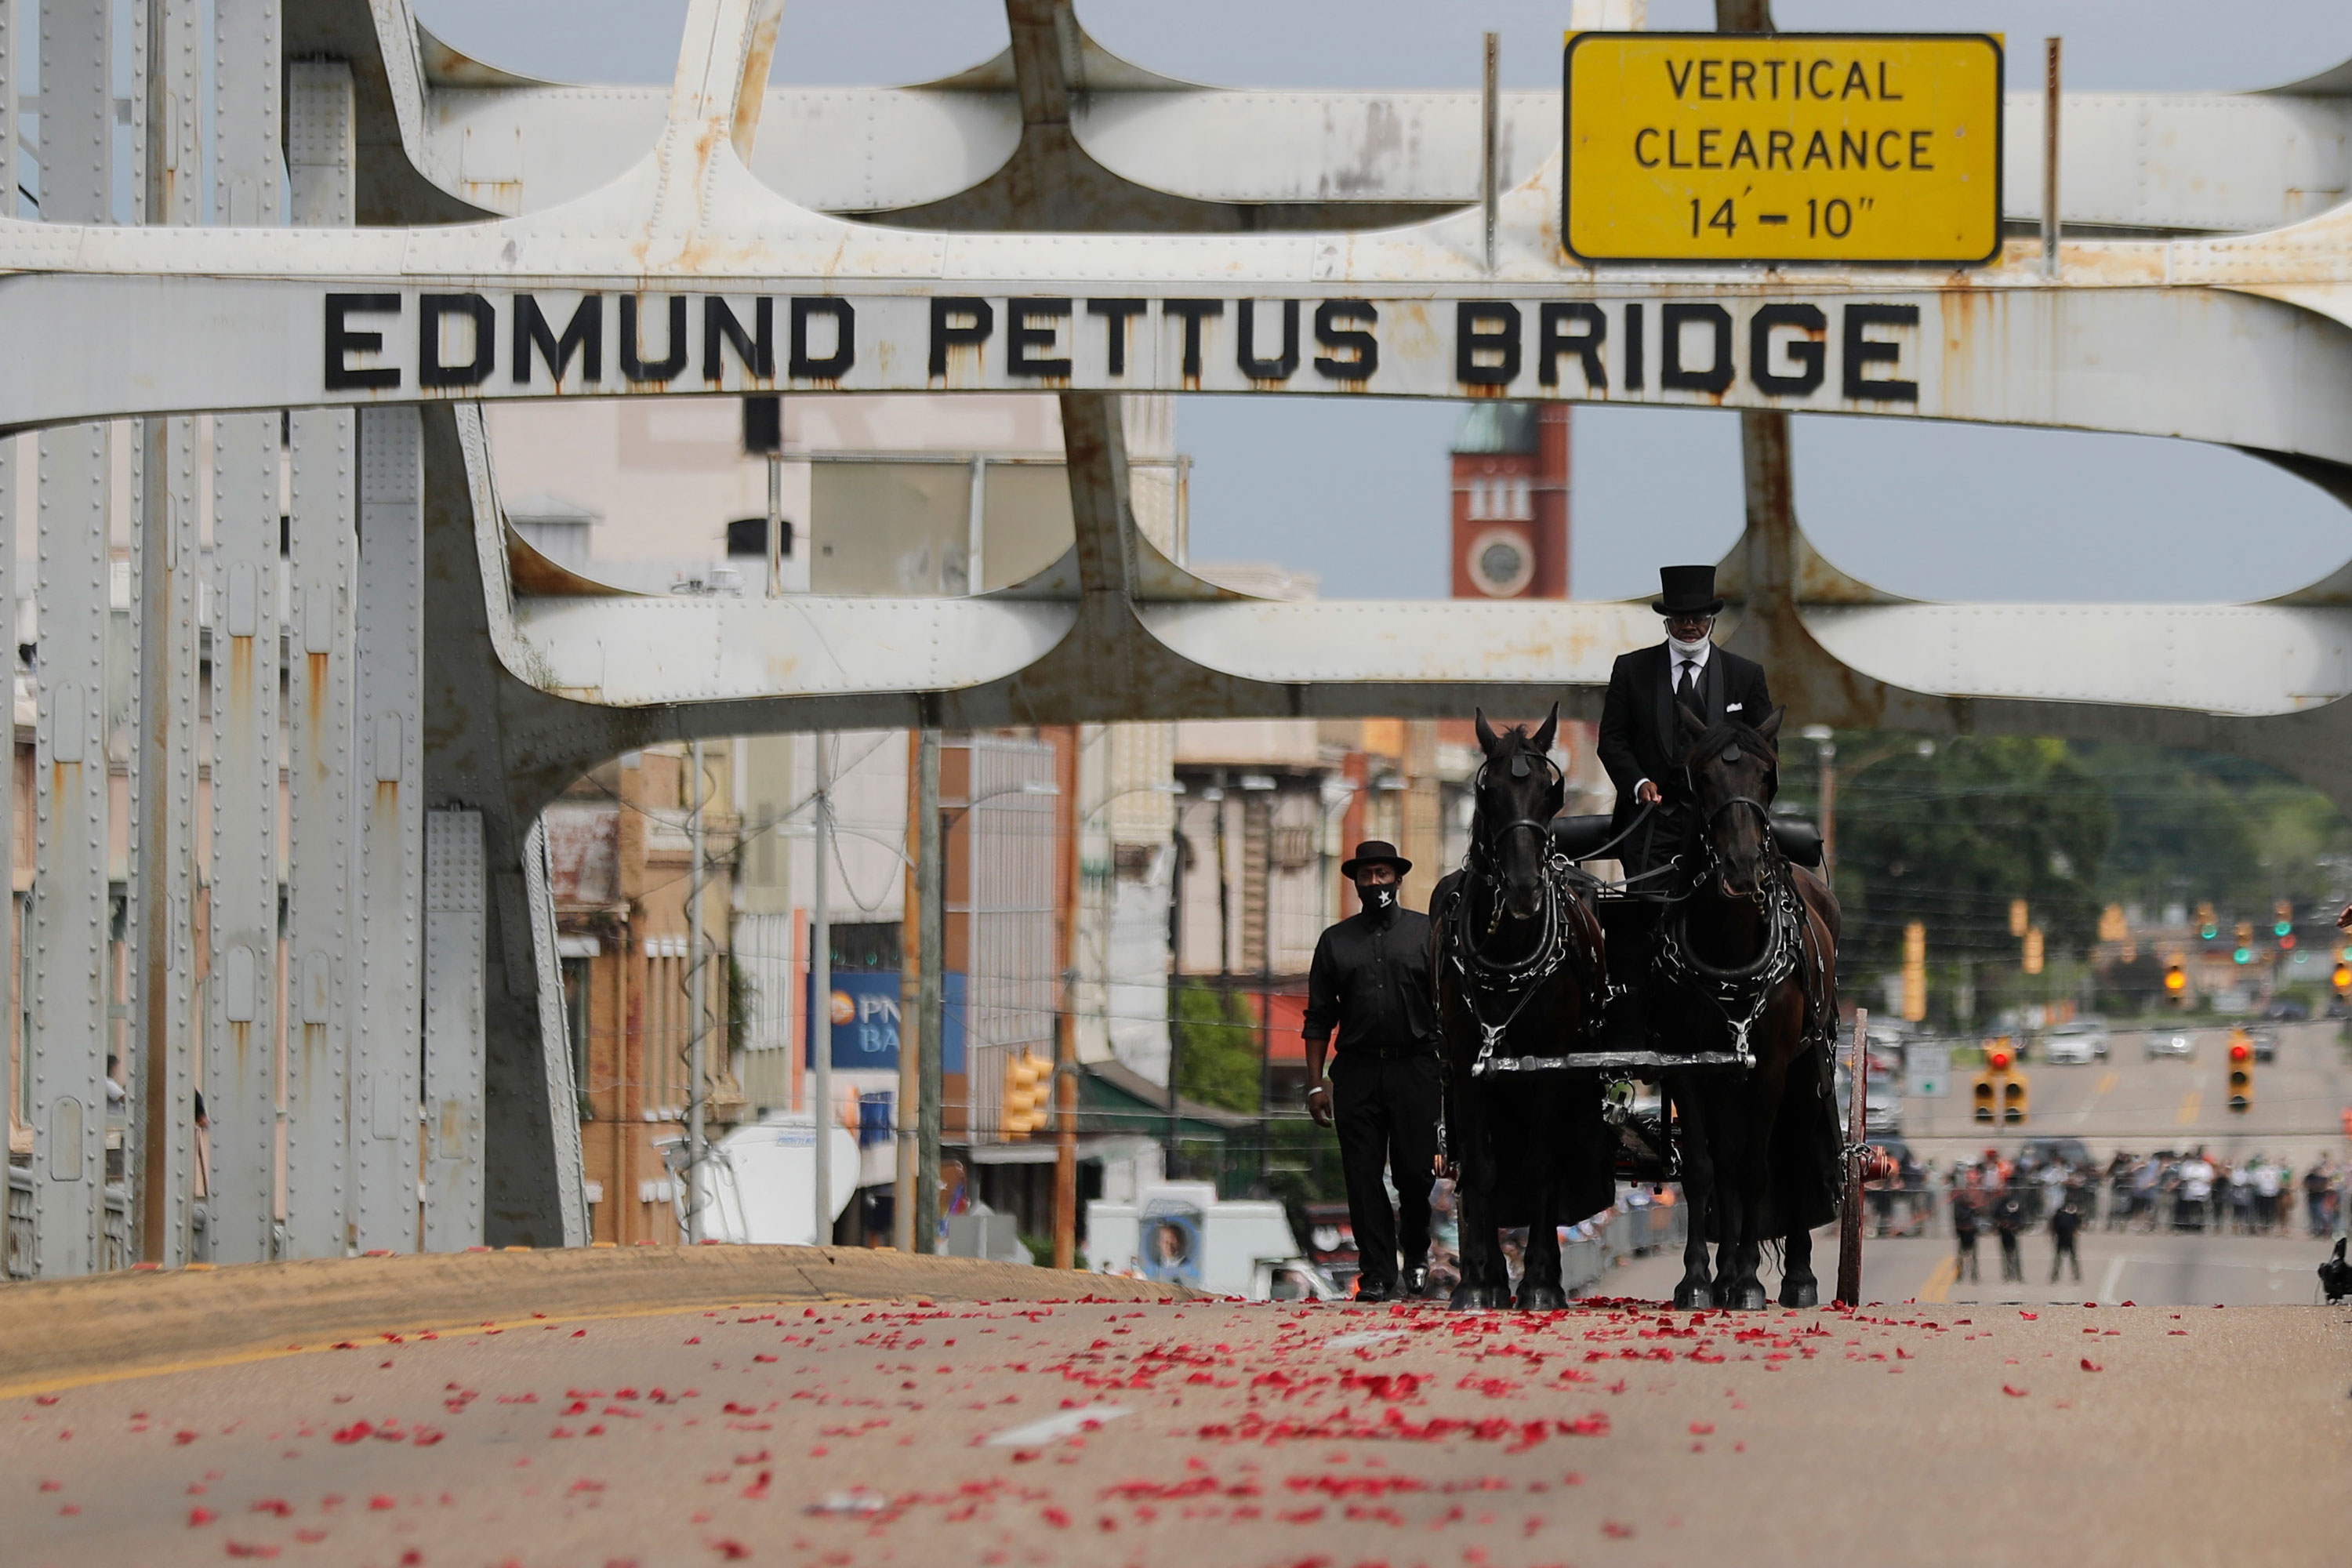 The casket of Rep. John Lewis is carried by horse-drawn carriage over the Edmund Pettus Bridge in Selma, Alabama, on July 26.